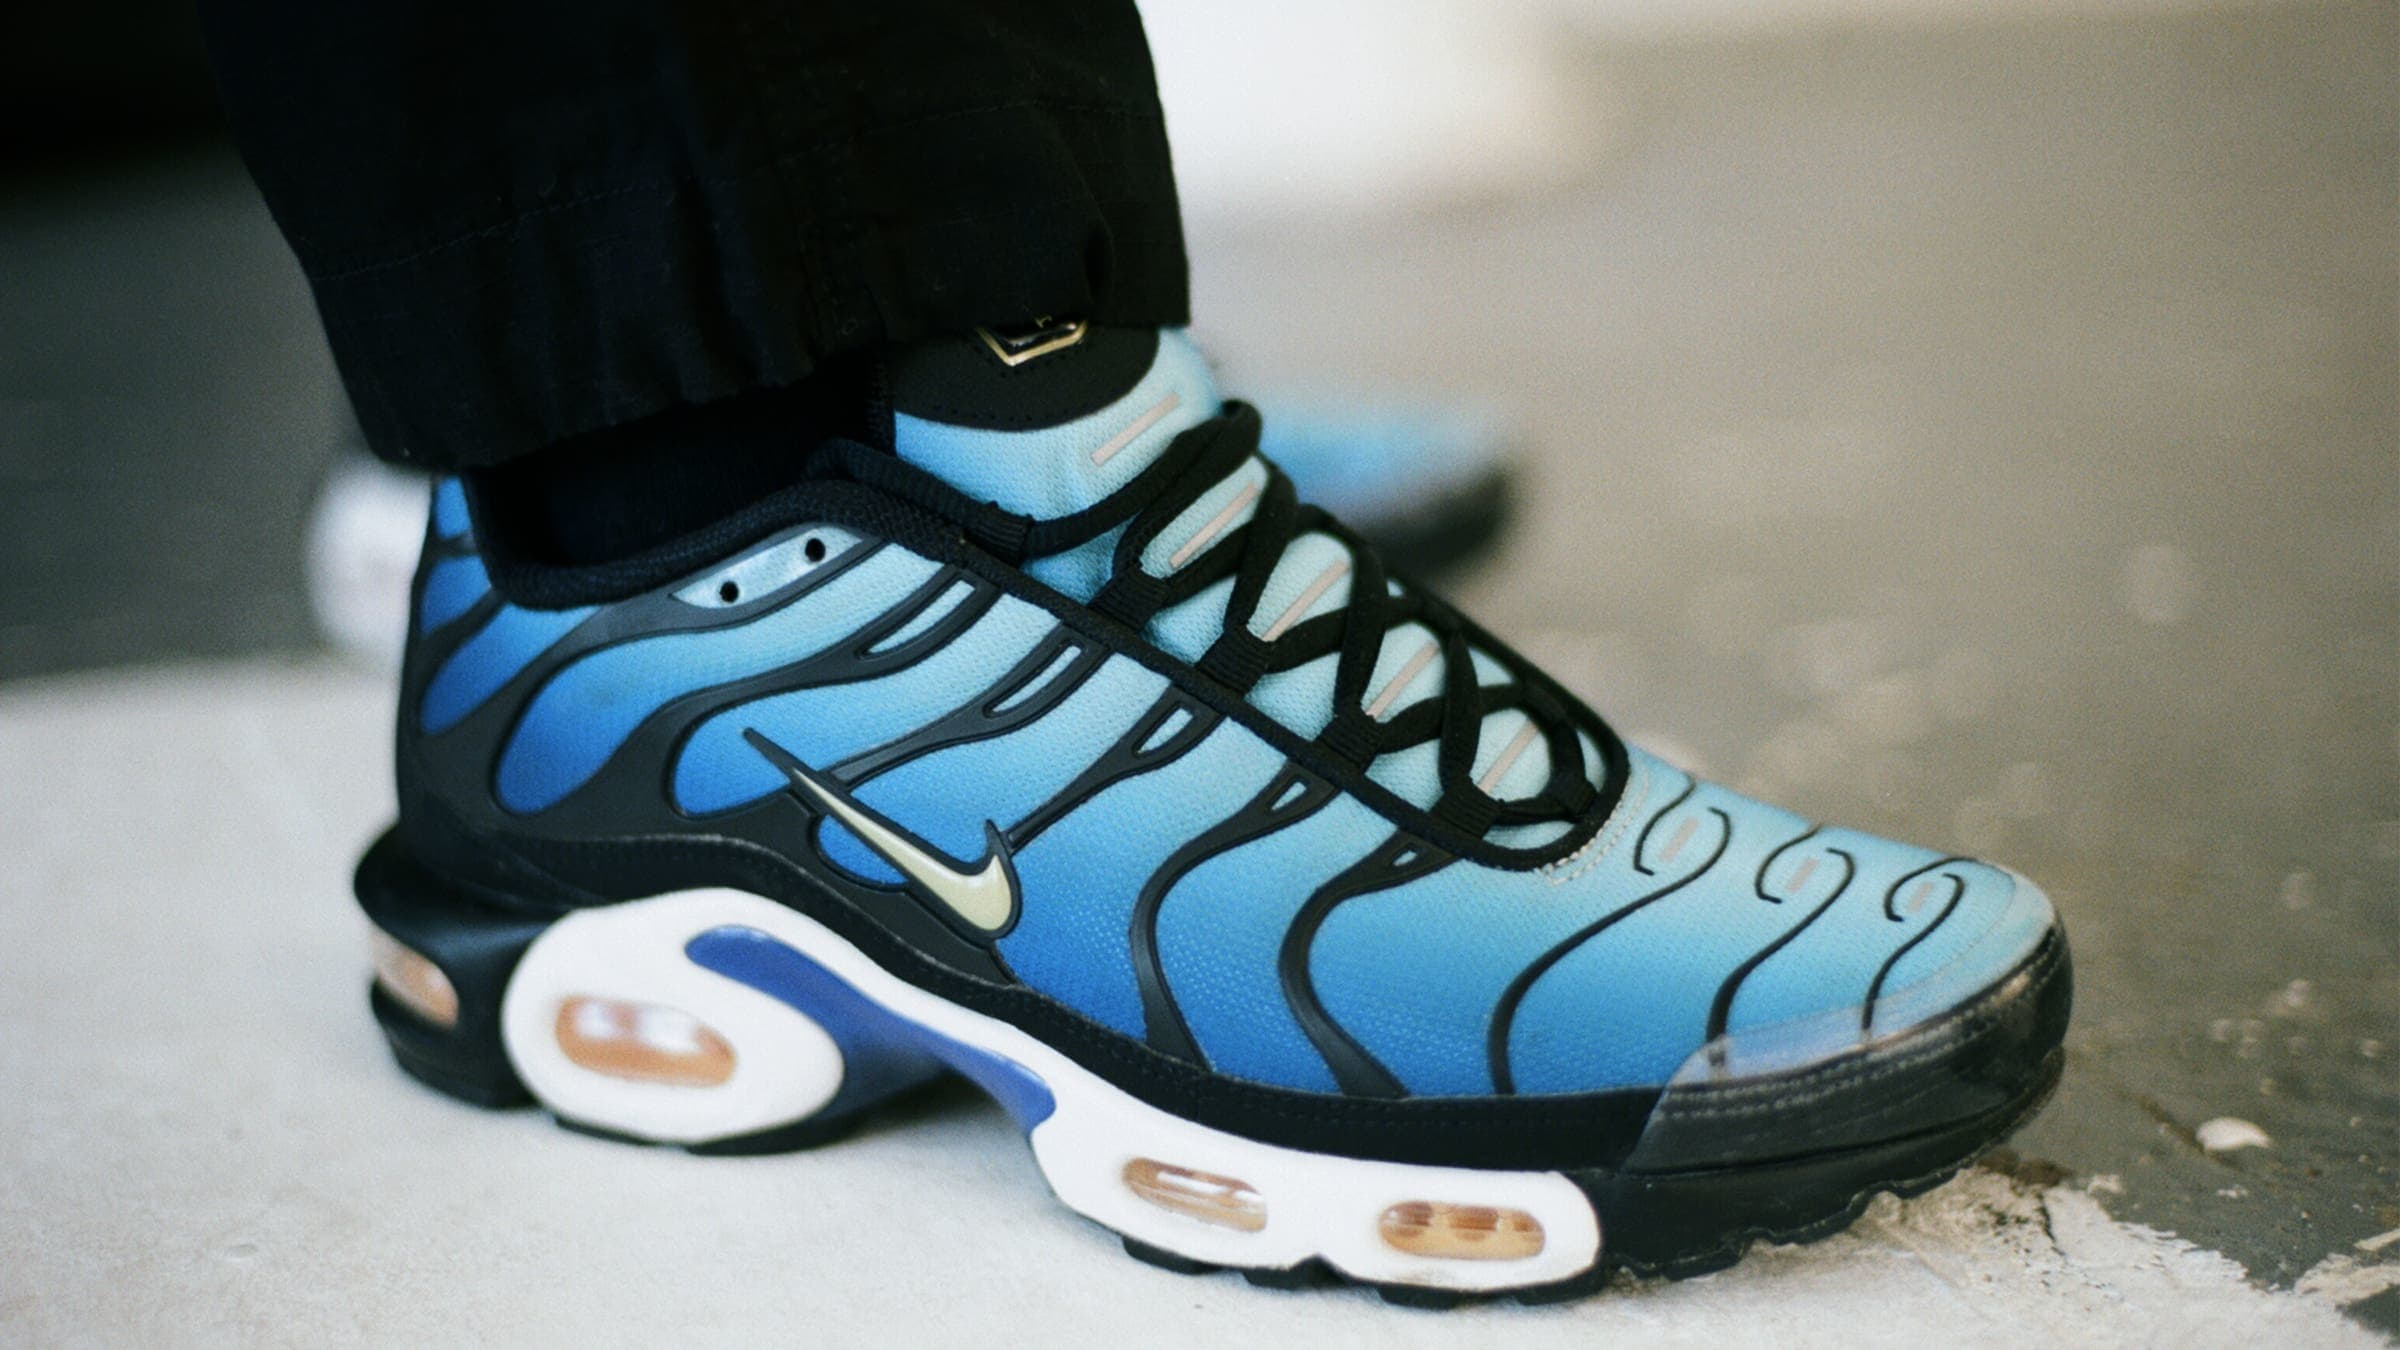 super popular c1c0c dea46 END. Features | Nike Air Max Plus (TN) OG 'Hyperblue ...